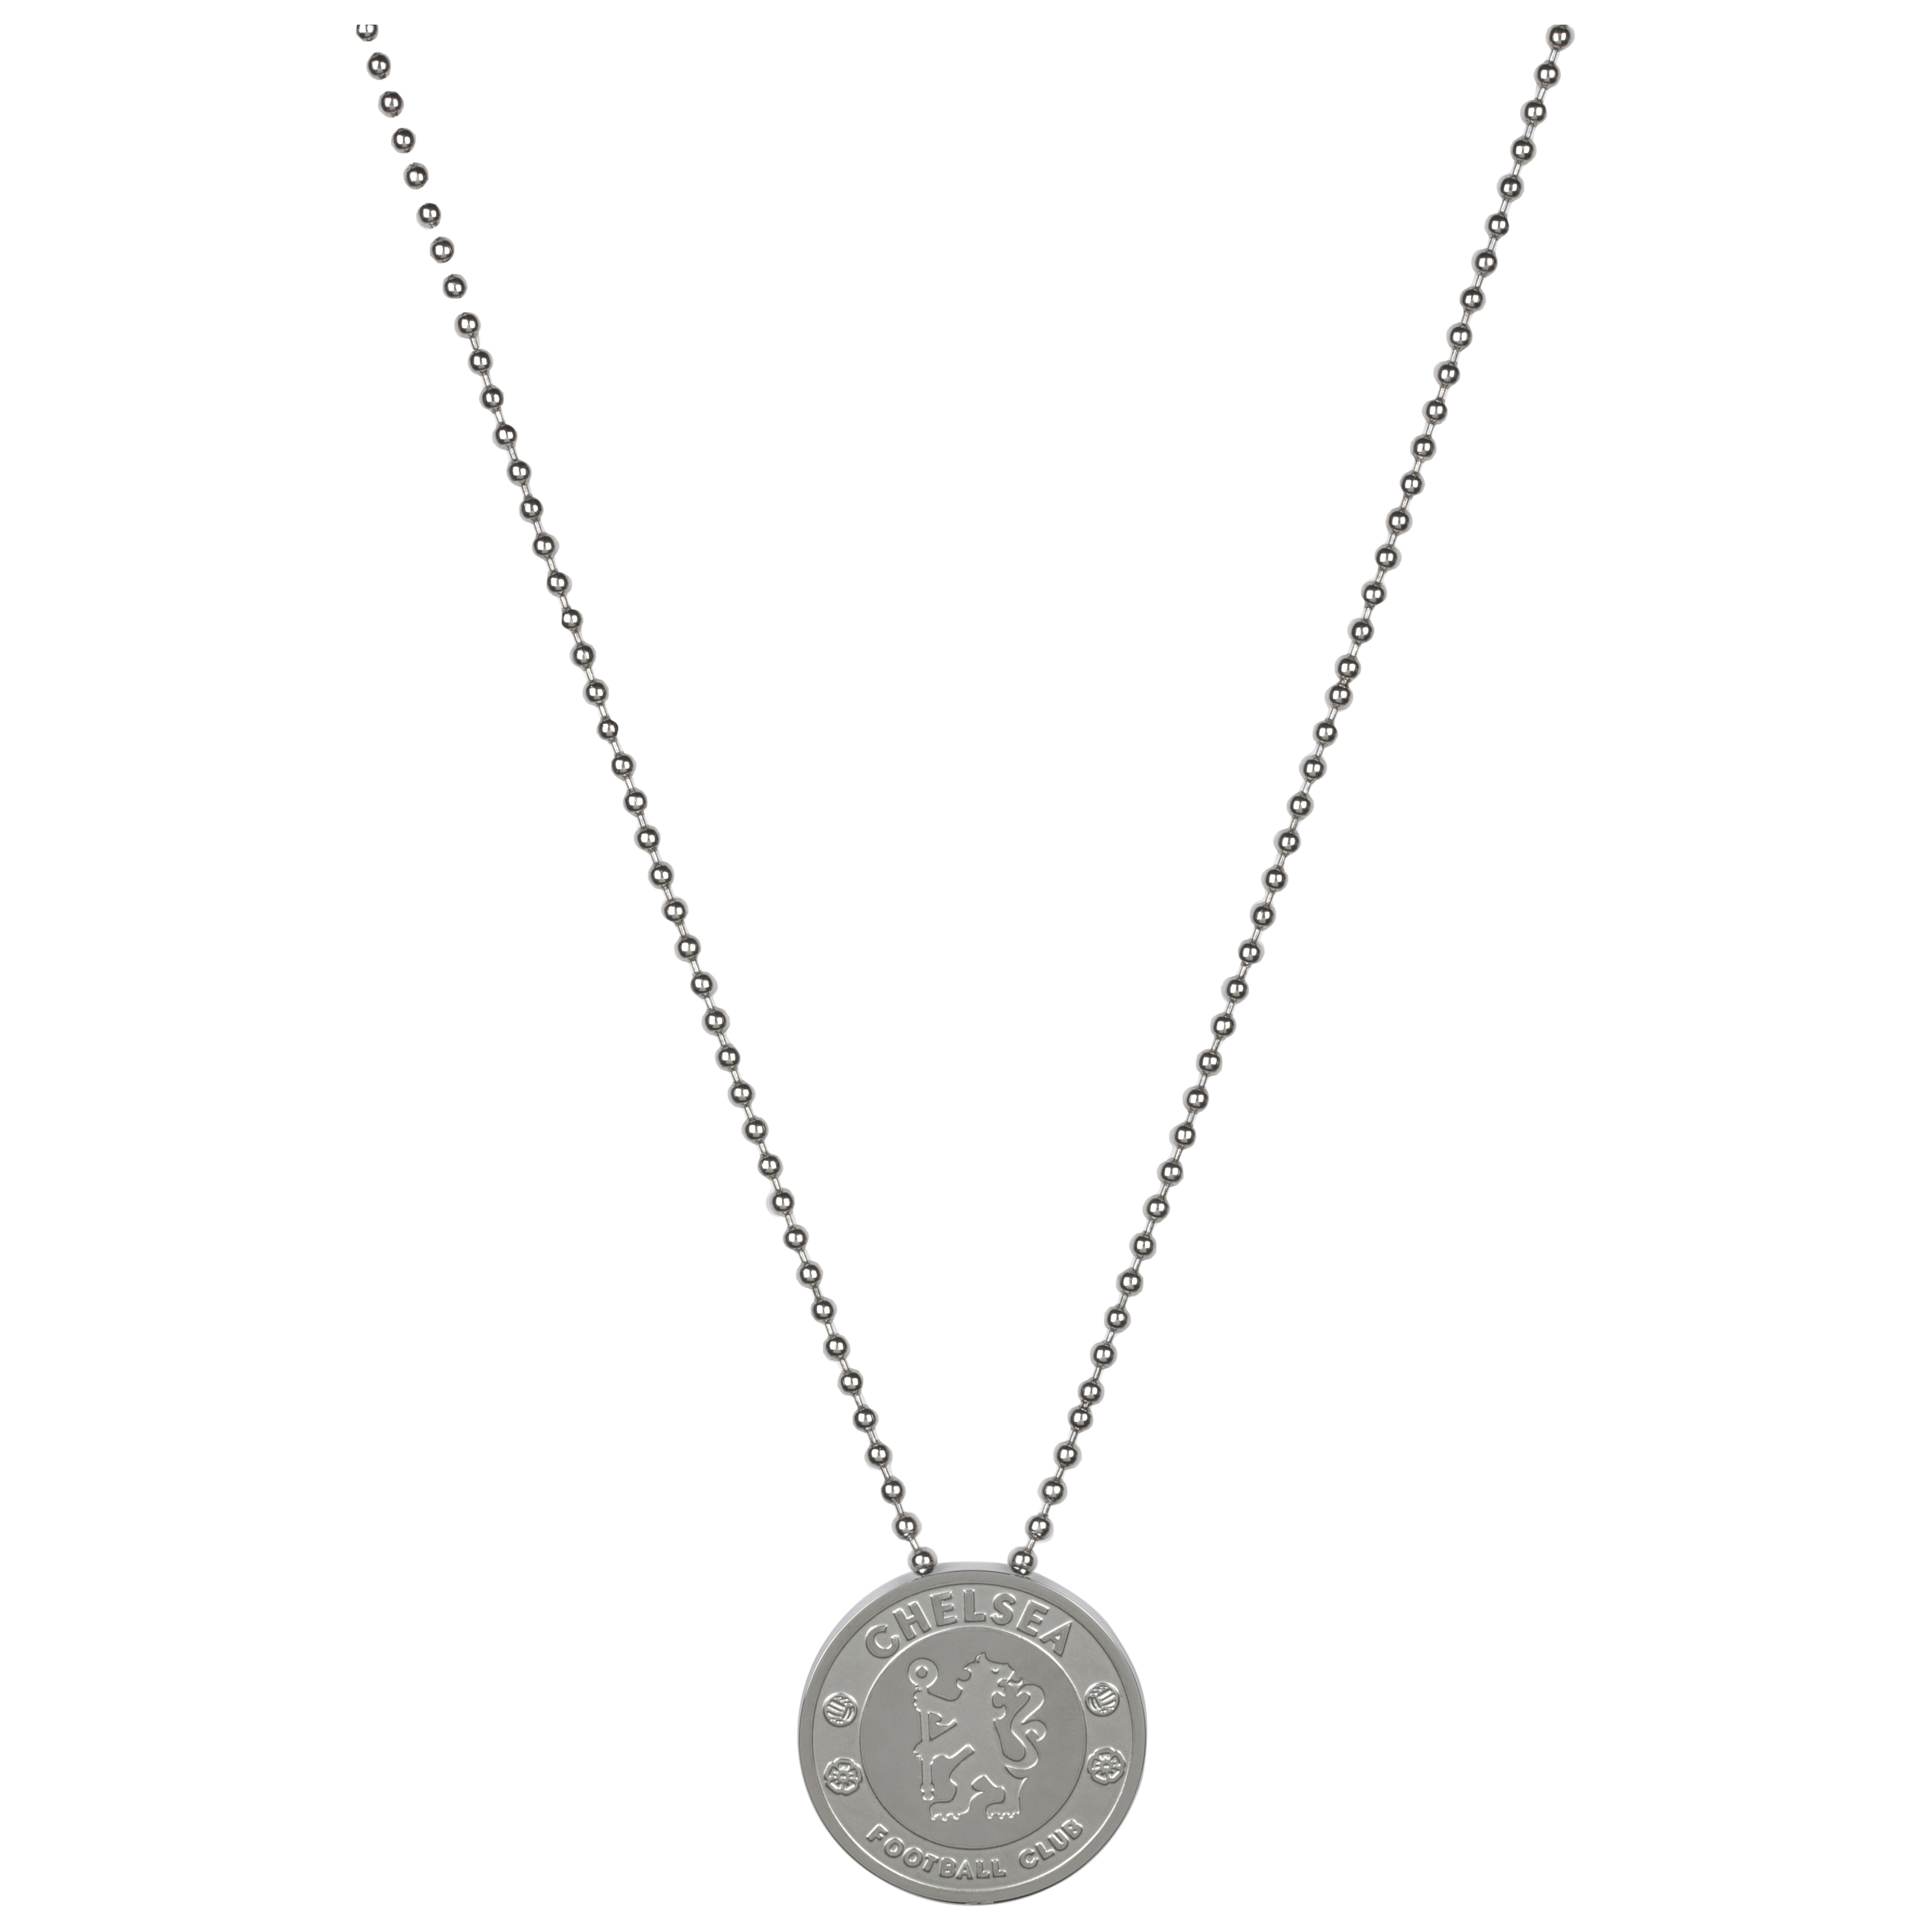 Chelsea Crest Round Pendant and Chain - Stainless Steel